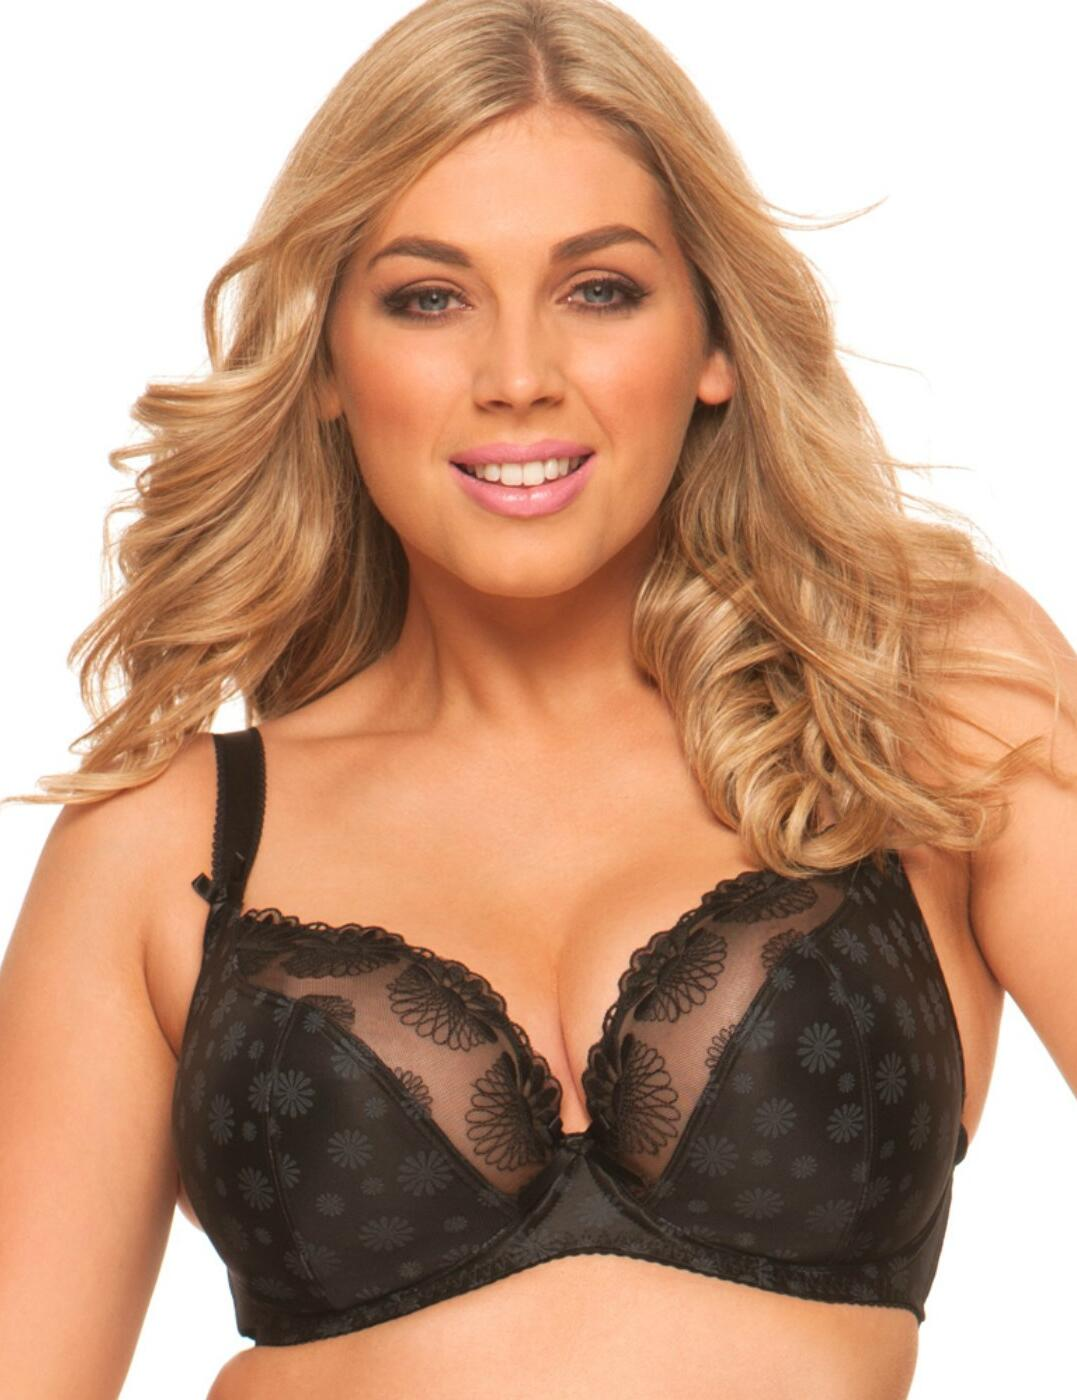 97e1194726 Curvy Kate Women s Daisie Plunge Everyday Bra Black 32f. About this  product. Picture 1 of 2  Picture 2 of 2